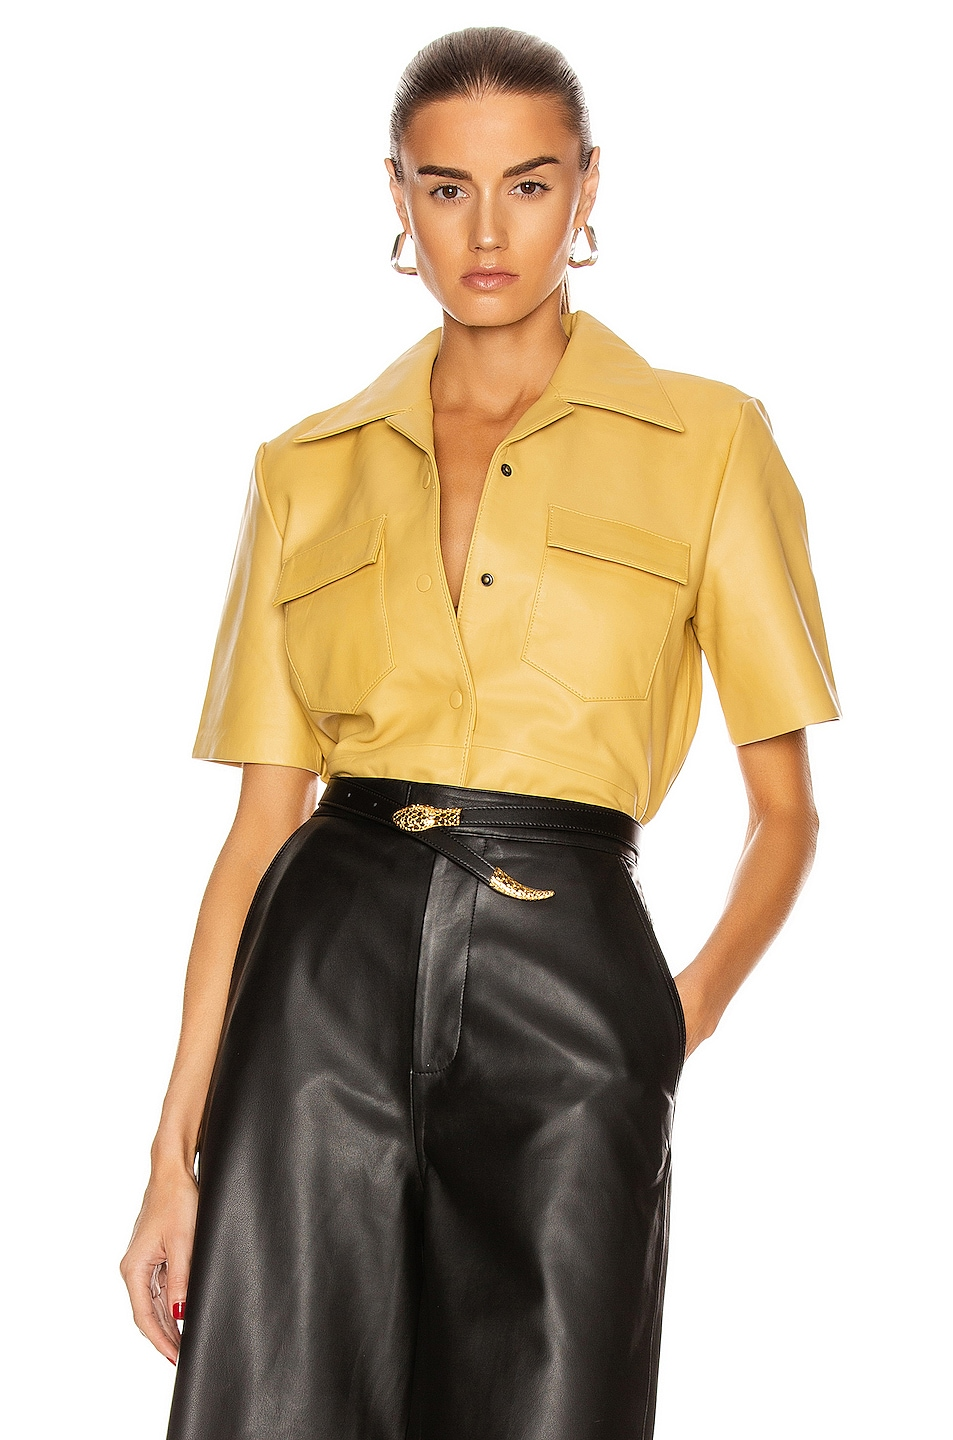 Image 1 of REMAIN Siena Short Sleeve Leather Top in Pala Banana